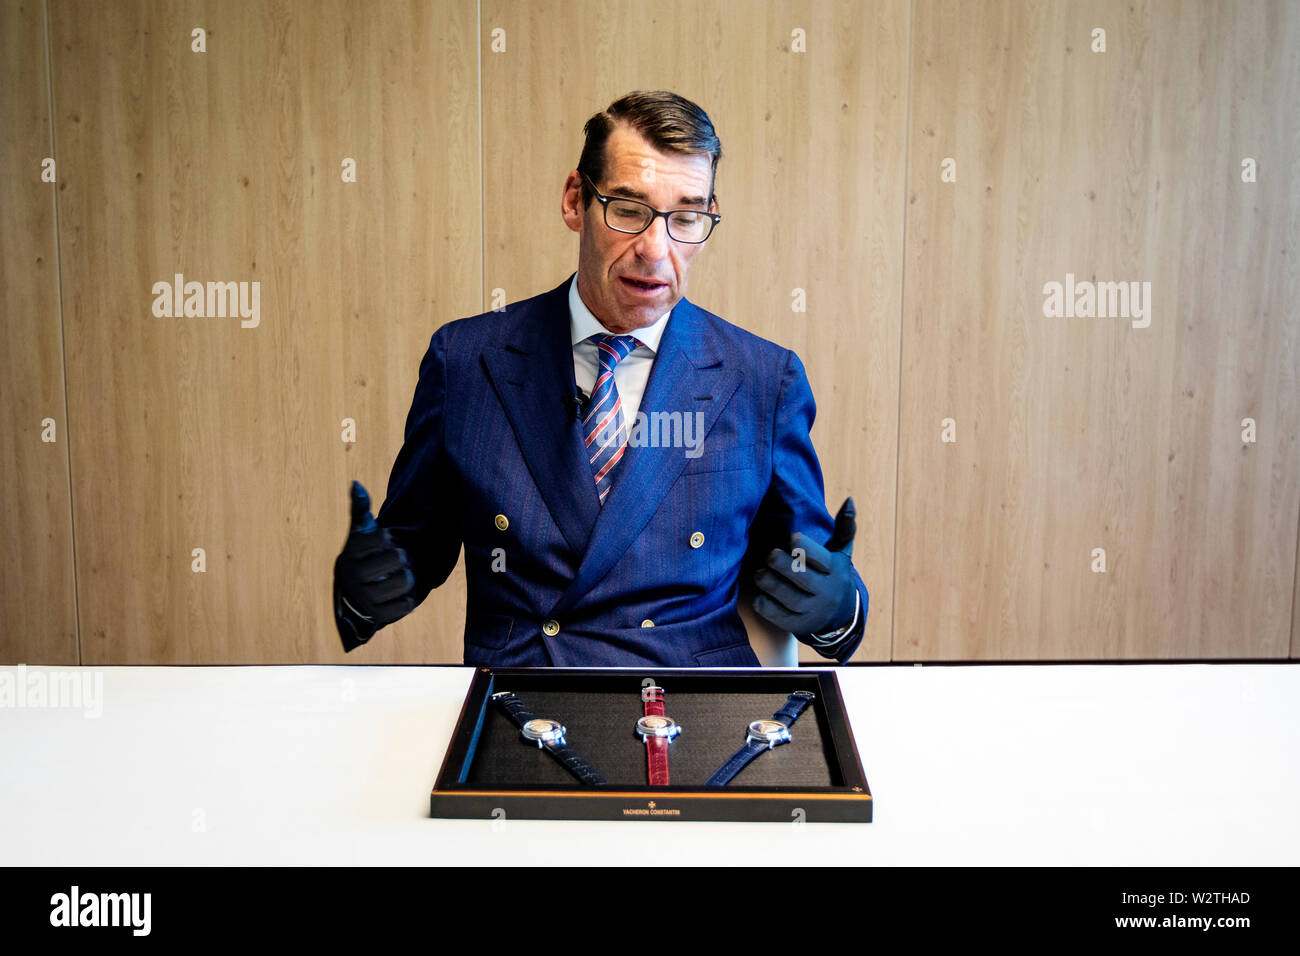 Christian Selmoni, in charge of 'style and heritage' at the Vacheron Constantin watch maker. Vacheron Constantin is one of the oldest watch manufacturers in the world, and also one of the most exclusive. - Stock Image